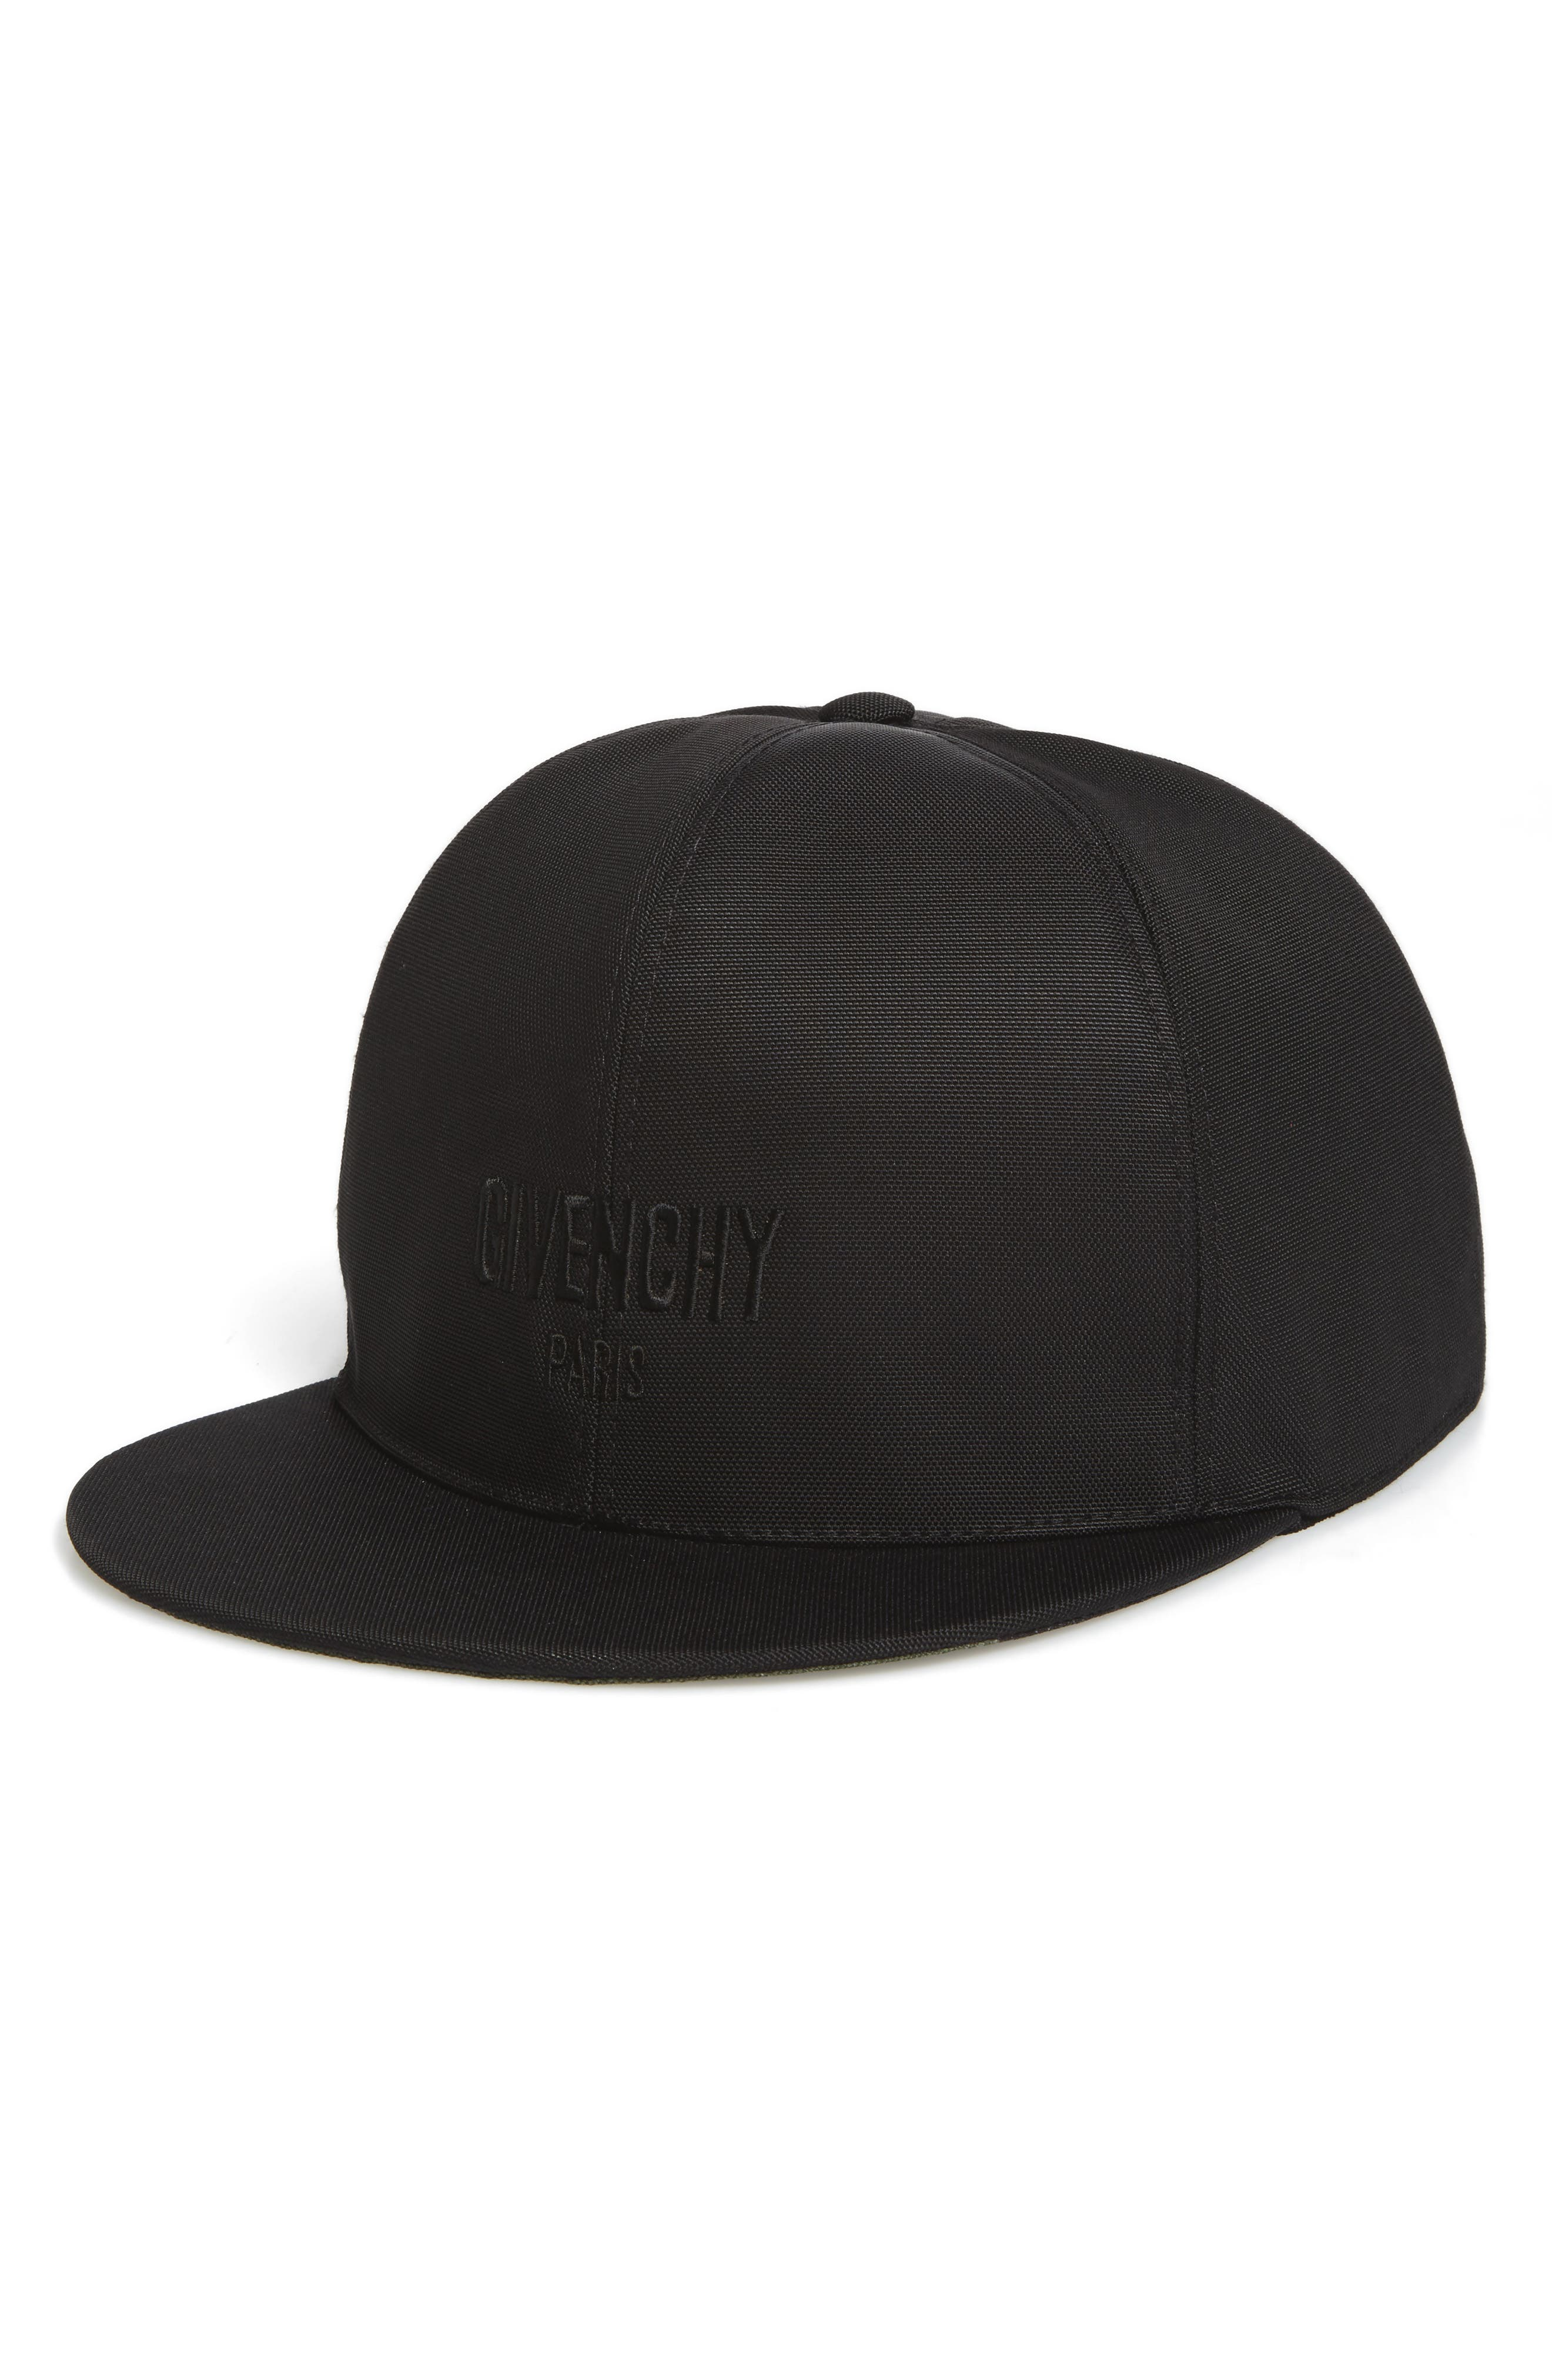 Givenchy Embroidered Baseball Cap